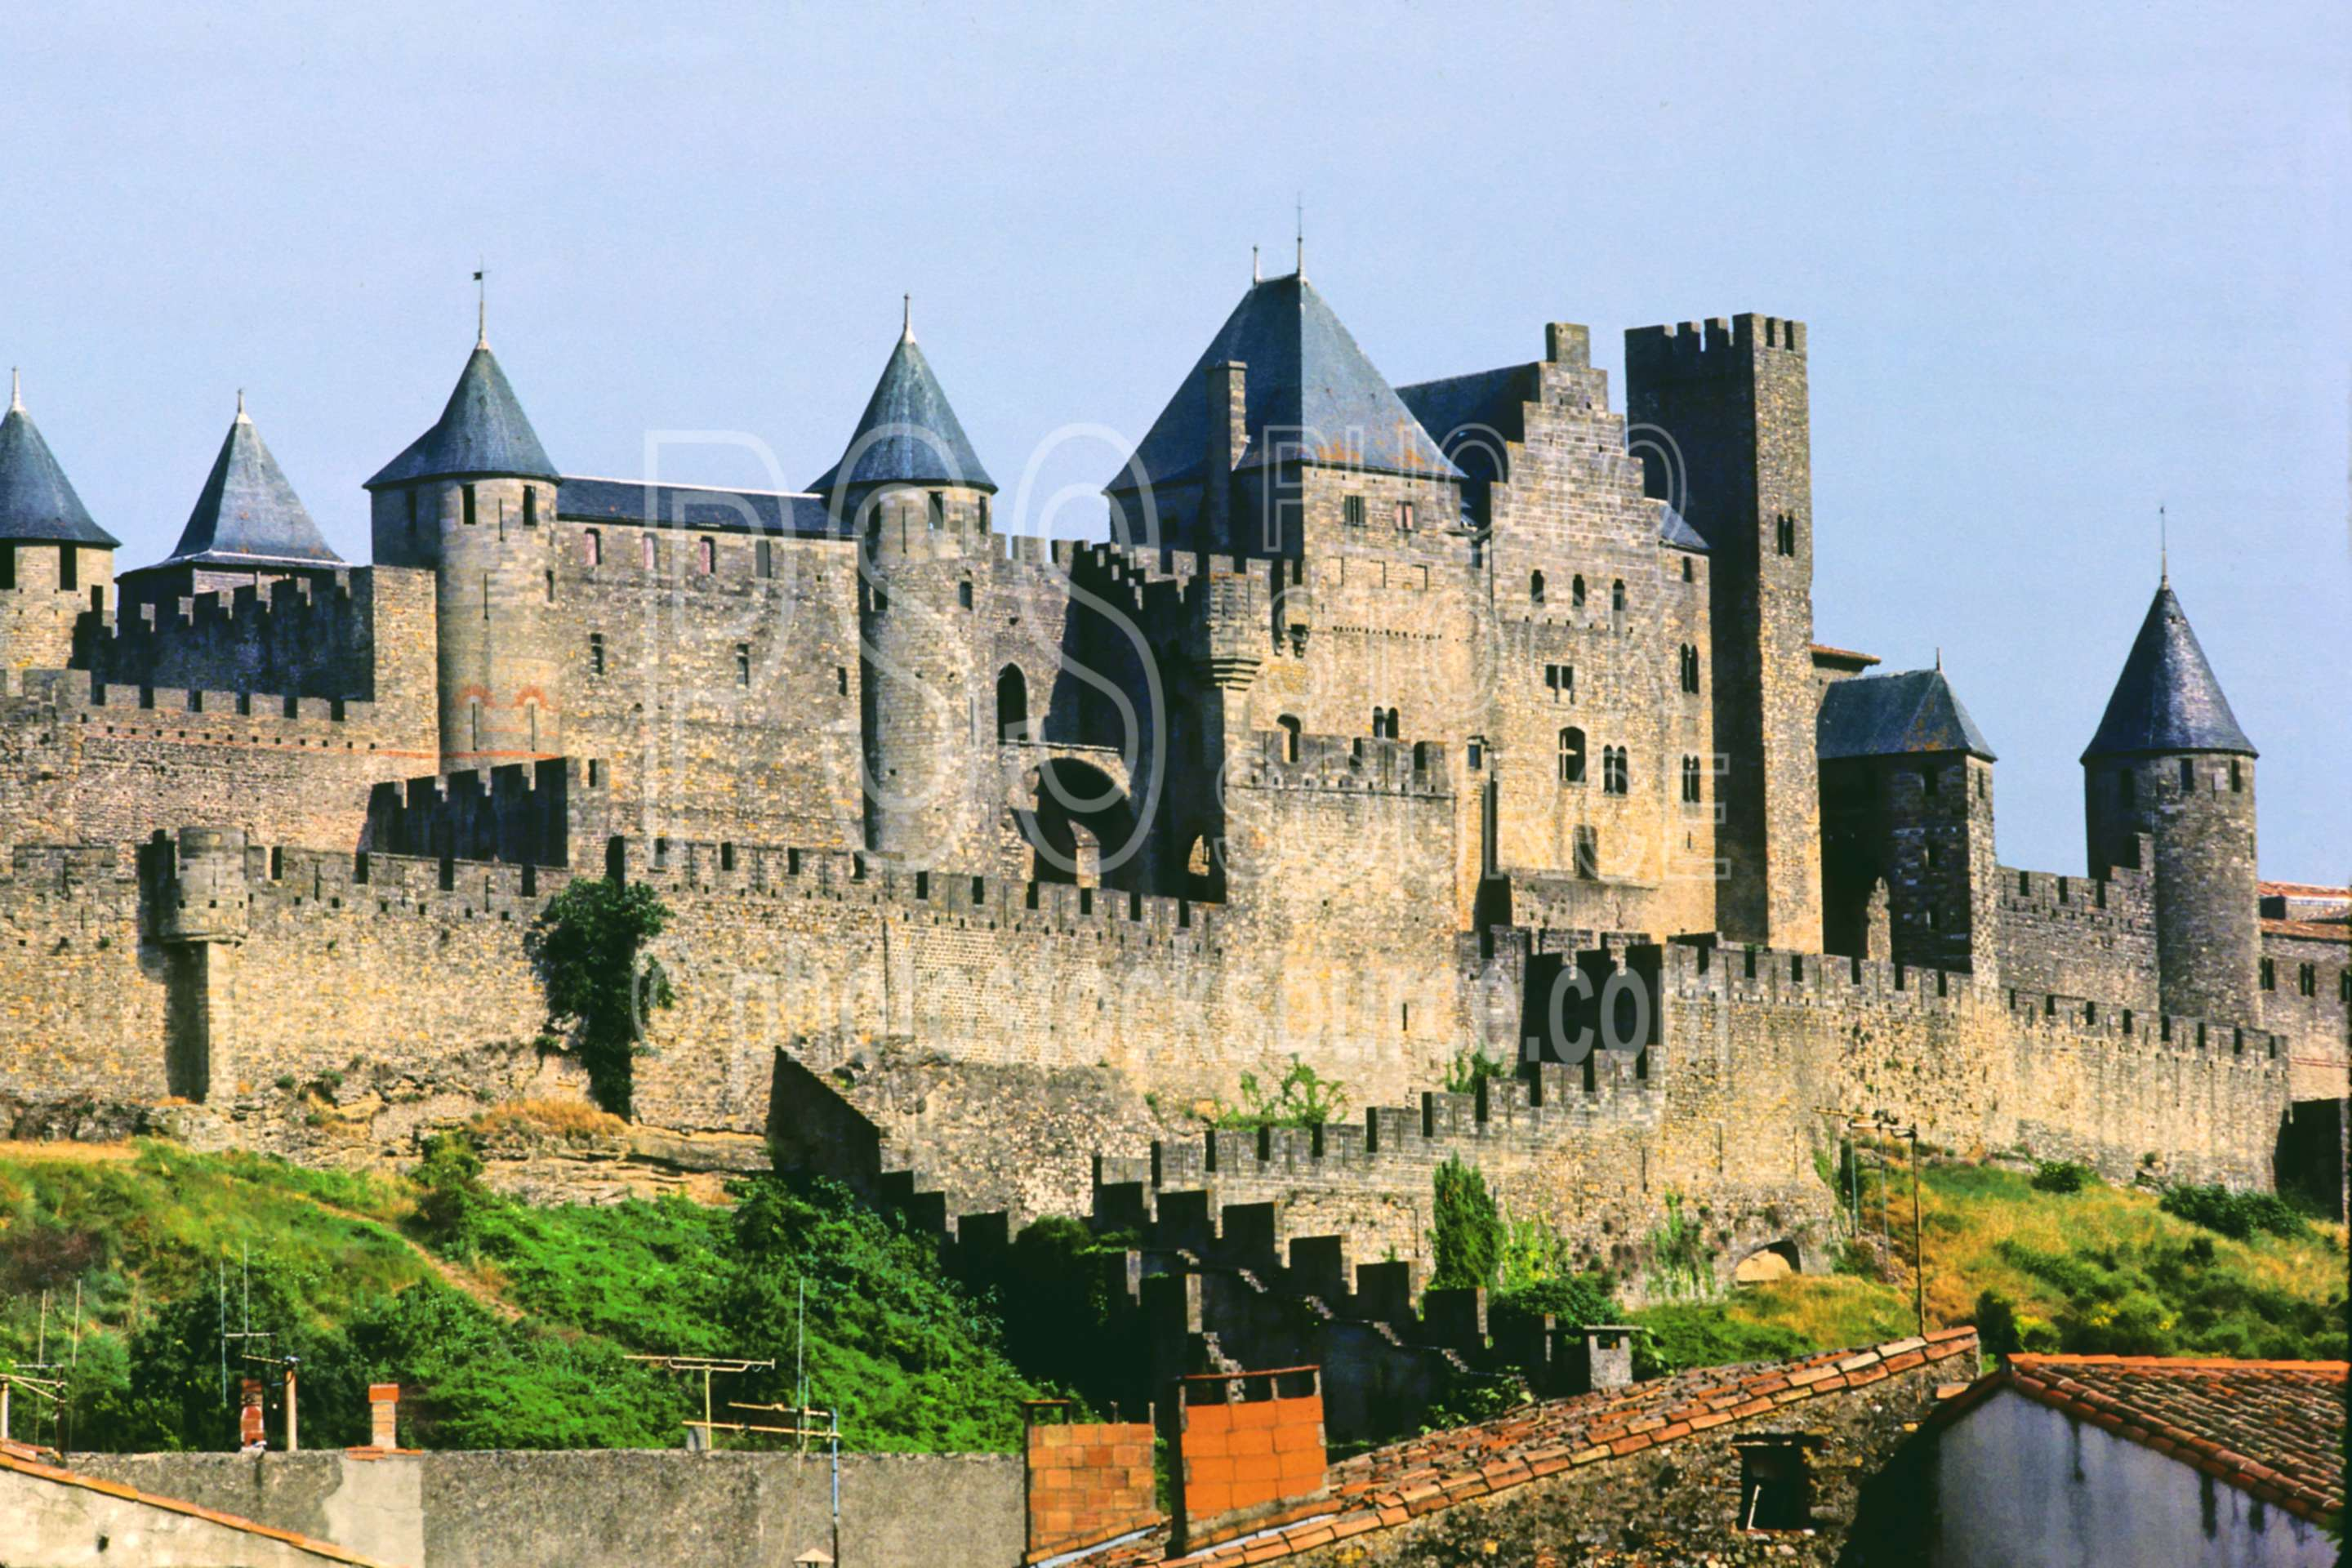 City Walls,castle,europe,medieval,road,wall,france castles